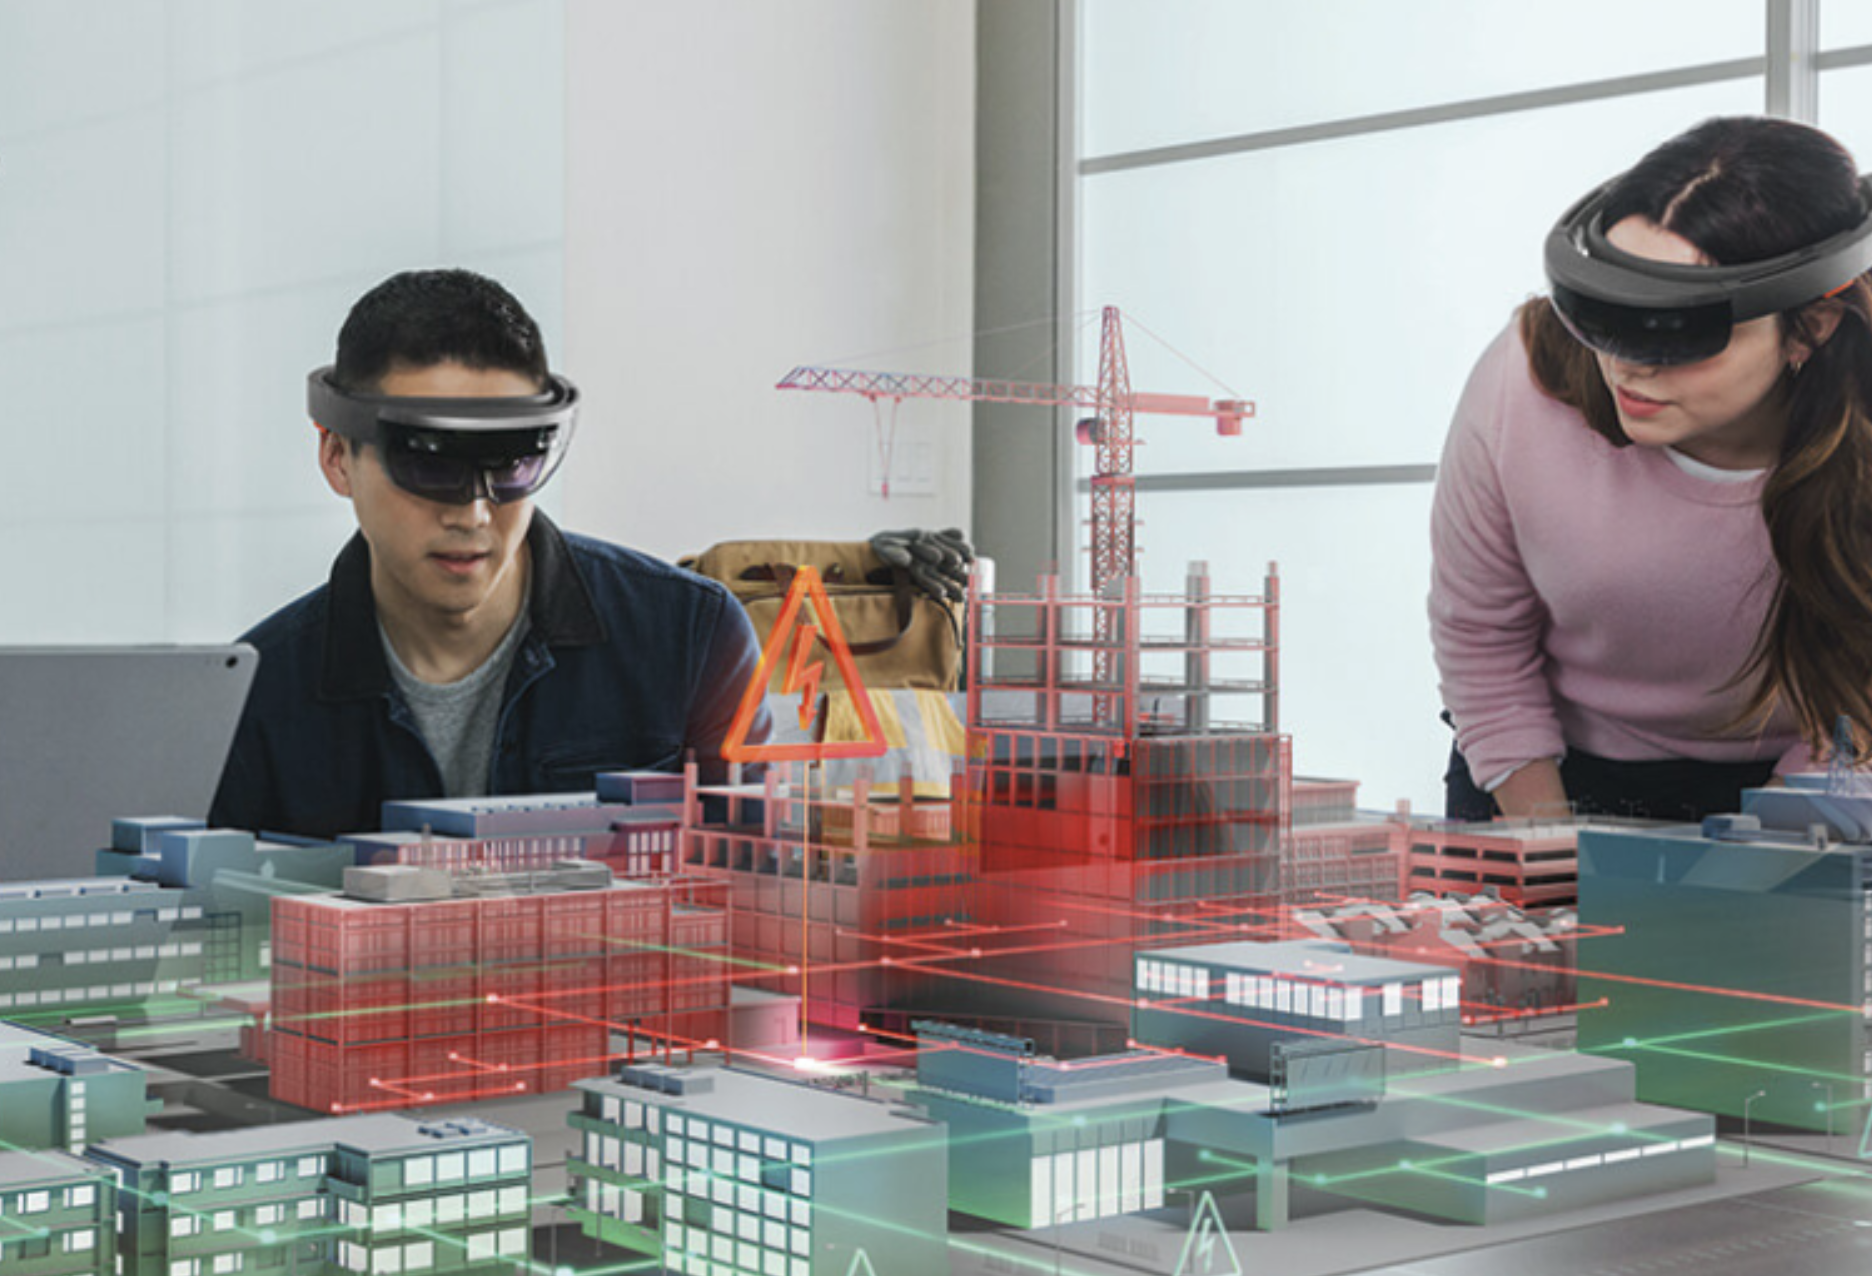 Collaboration - Imagine an AR version of Skype or Zoom through a pair of AR glasses. Our 95% transparency enables natural eye contact, and our wide field of vision enables viewing of content and annotations at arm's range.